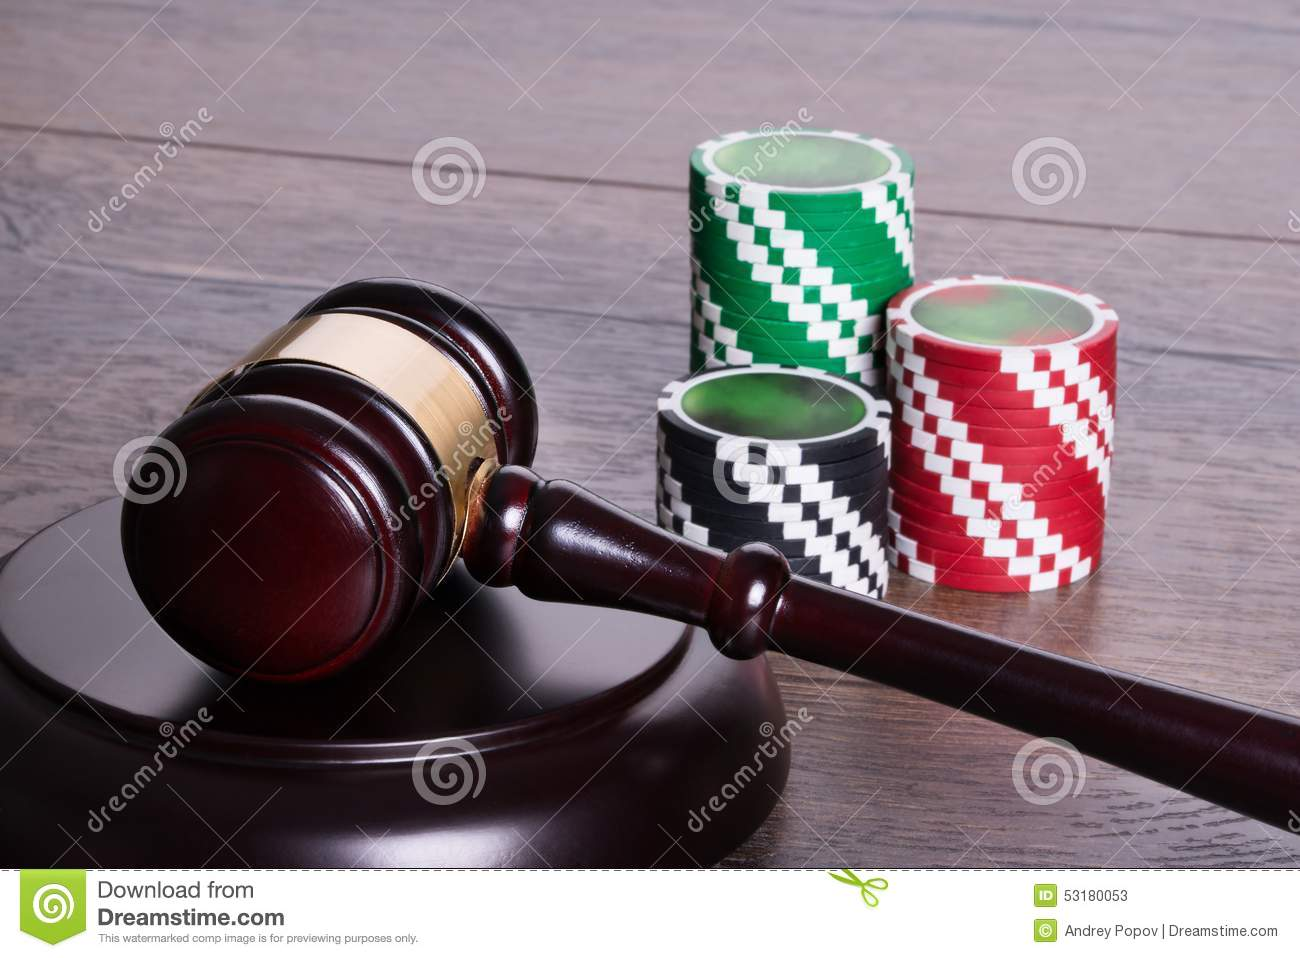 gambling legalization Gambling is legally restricted in the united states in 2008, gambling activities  generated gross  the great depression saw the legalization of some forms of  gambling such as bingo in some cities to allow churches and other groups to  raise.